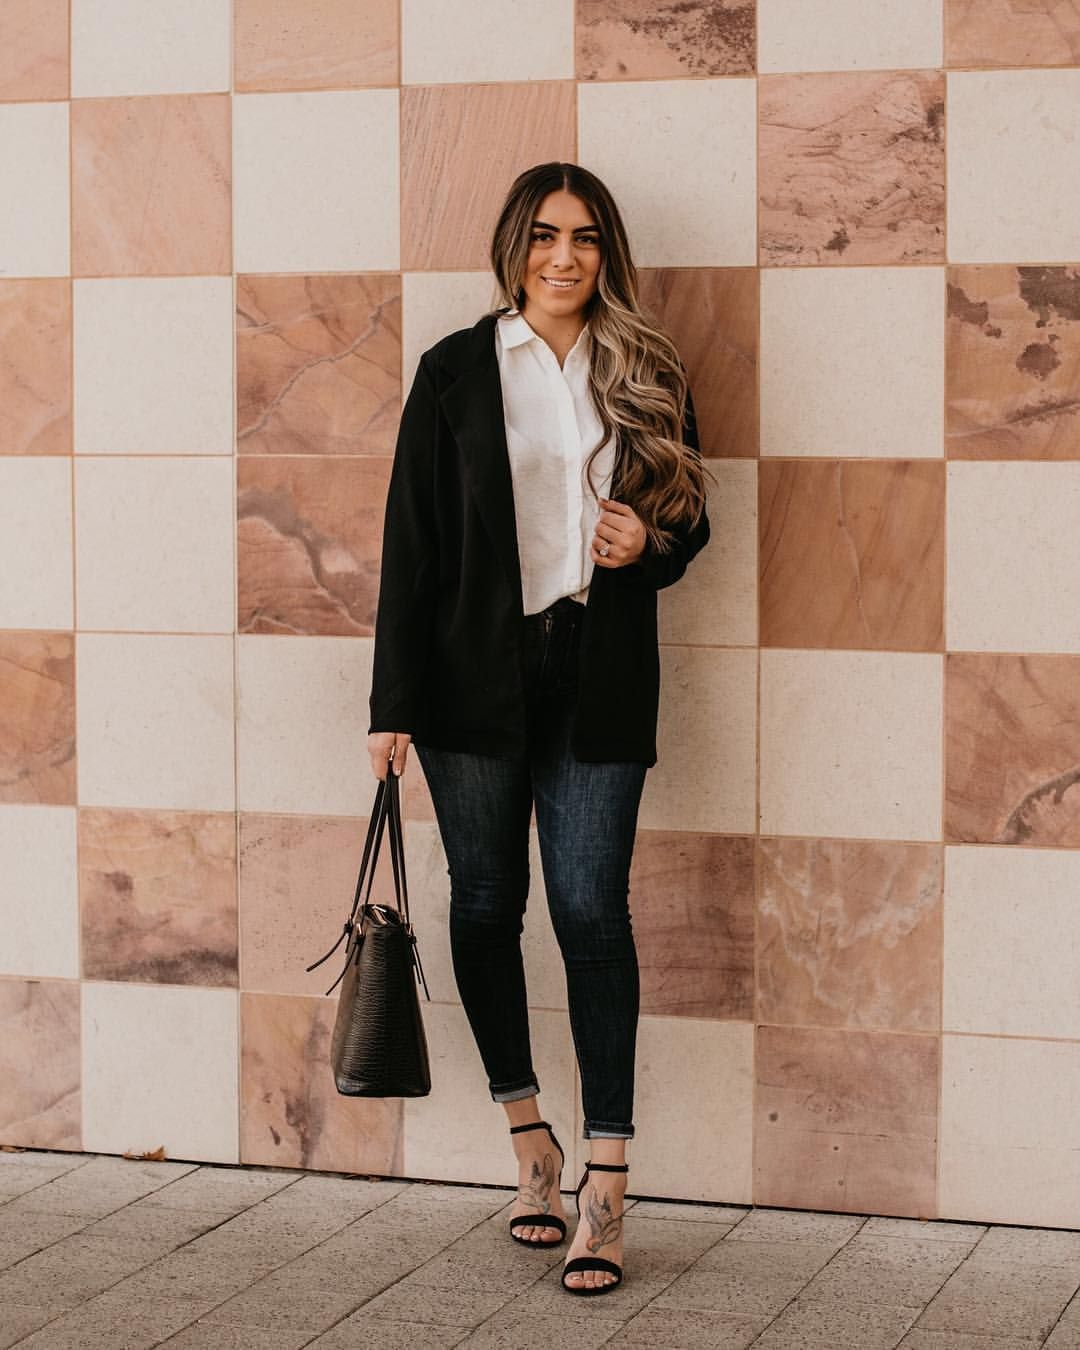 Pin on • Fashion•Bloggers•We•Love